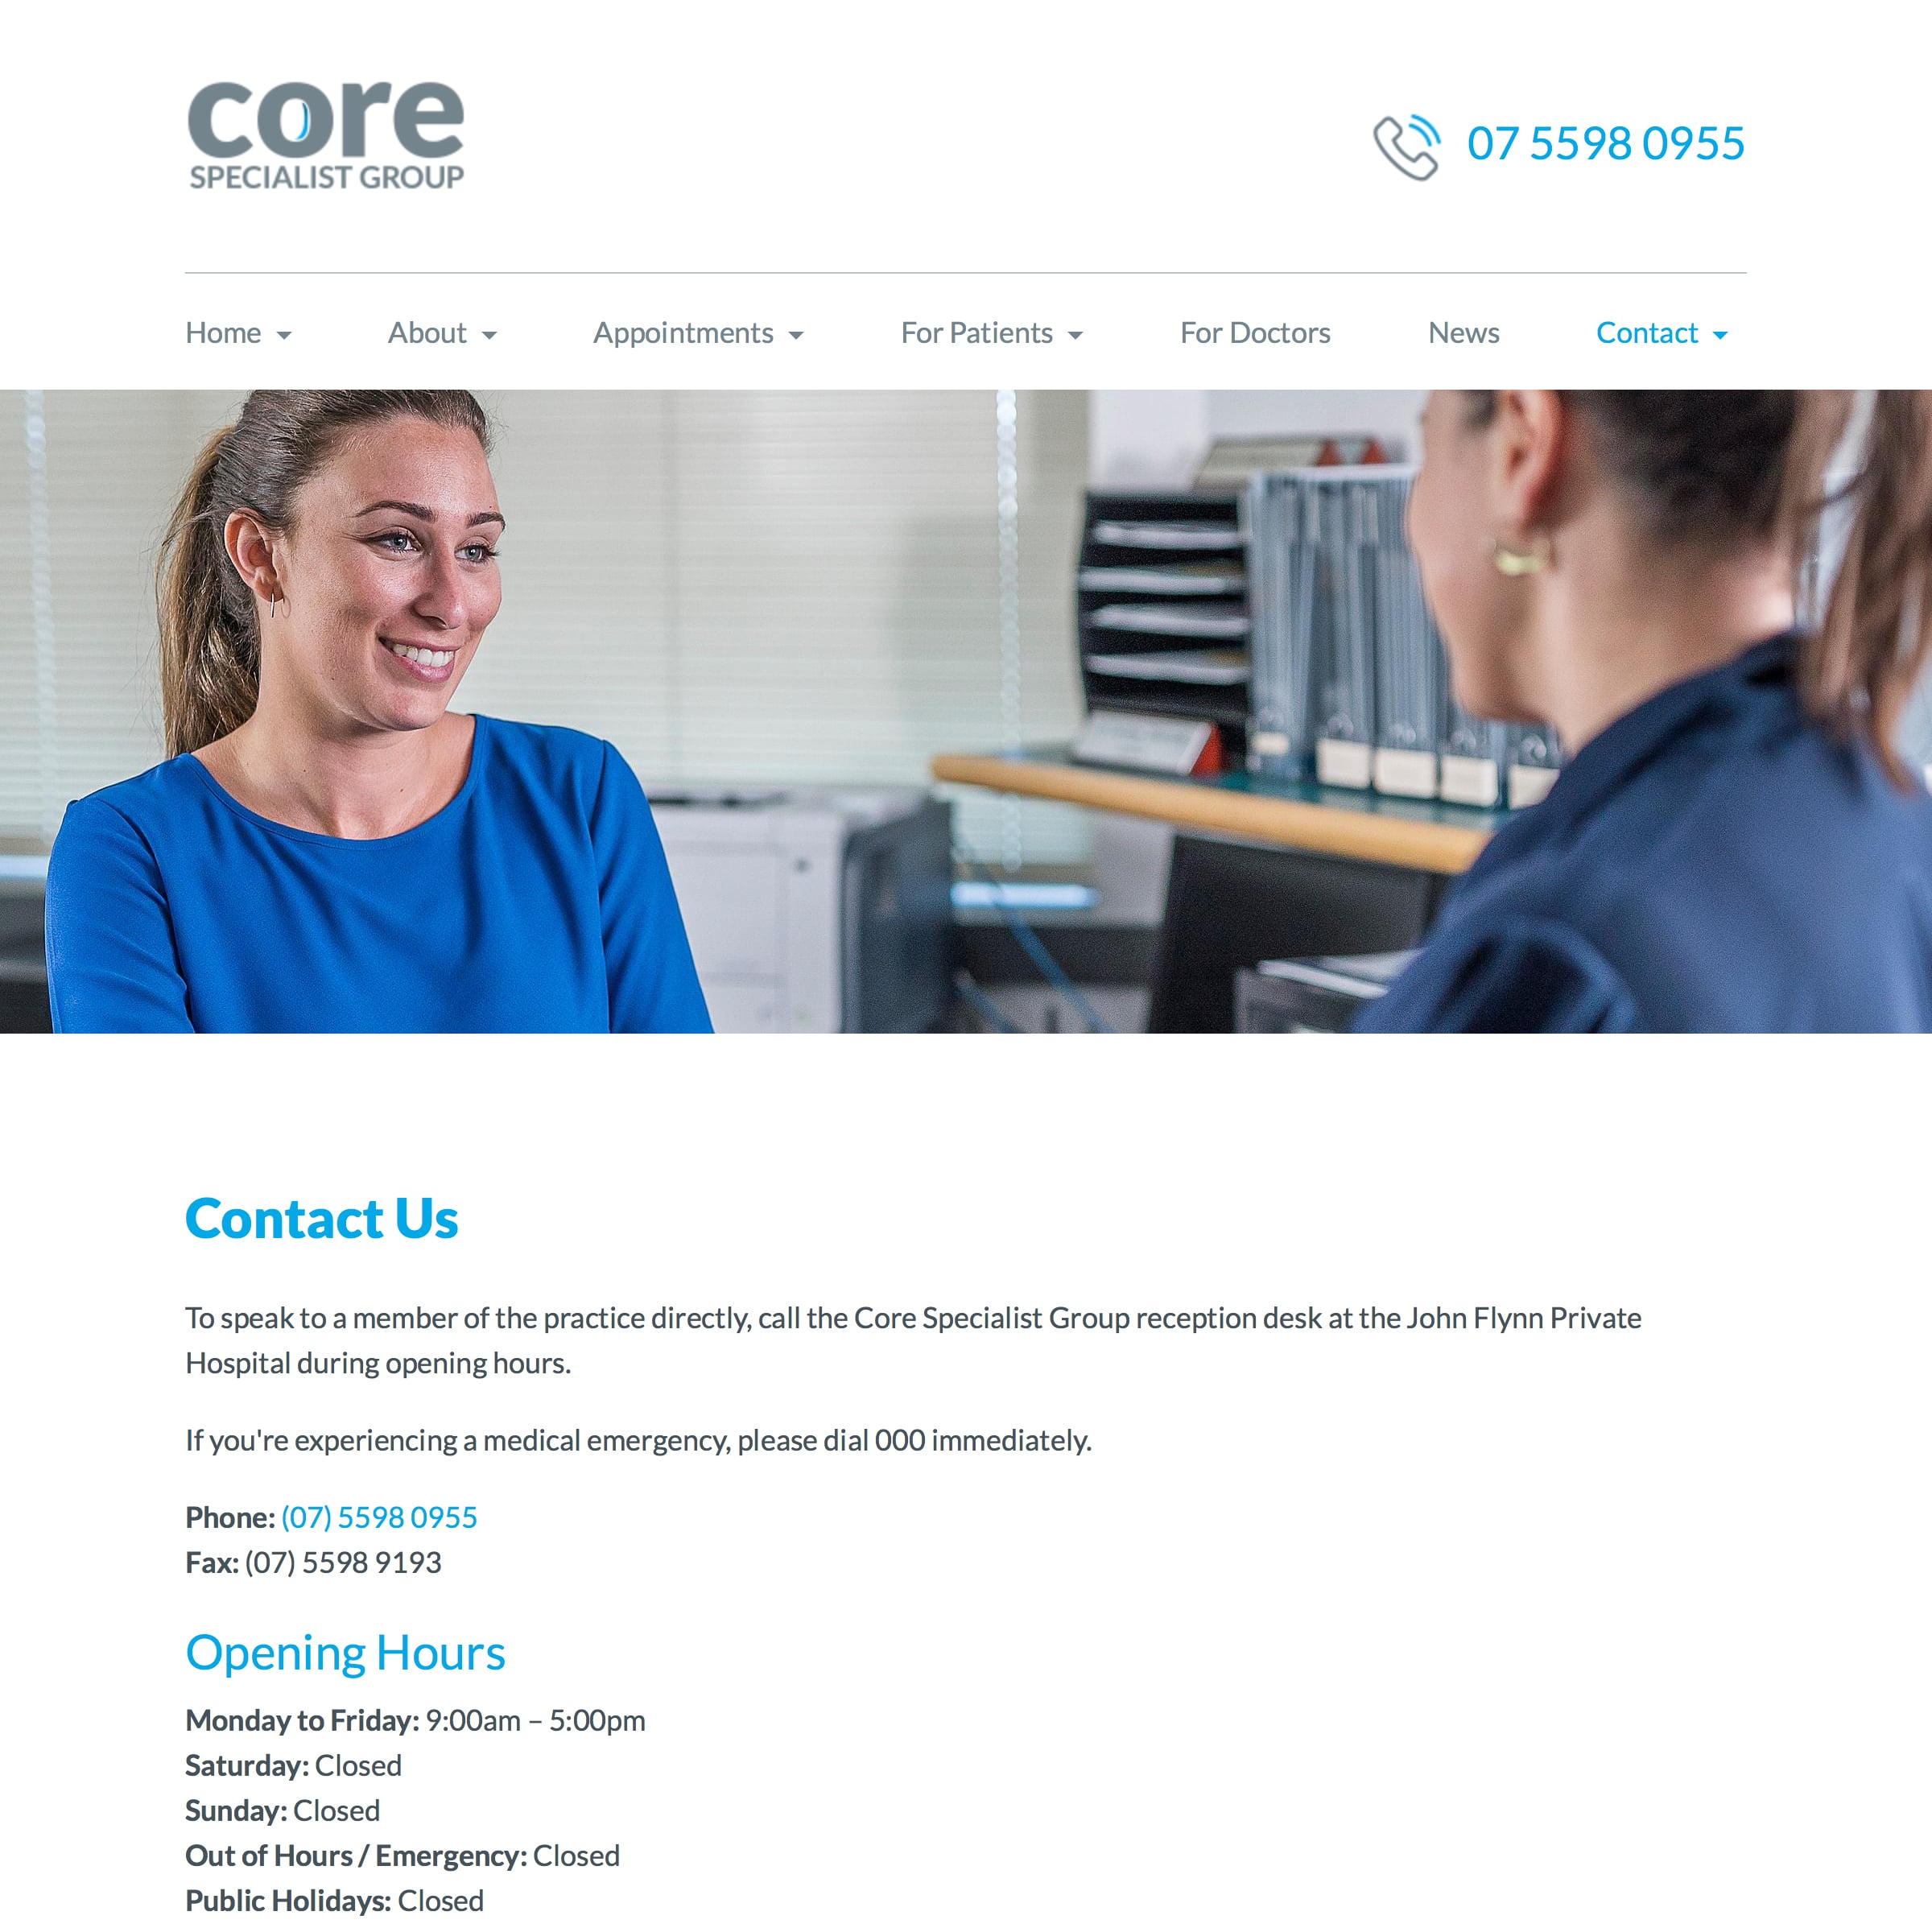 Core Specialist Group - Contact Us